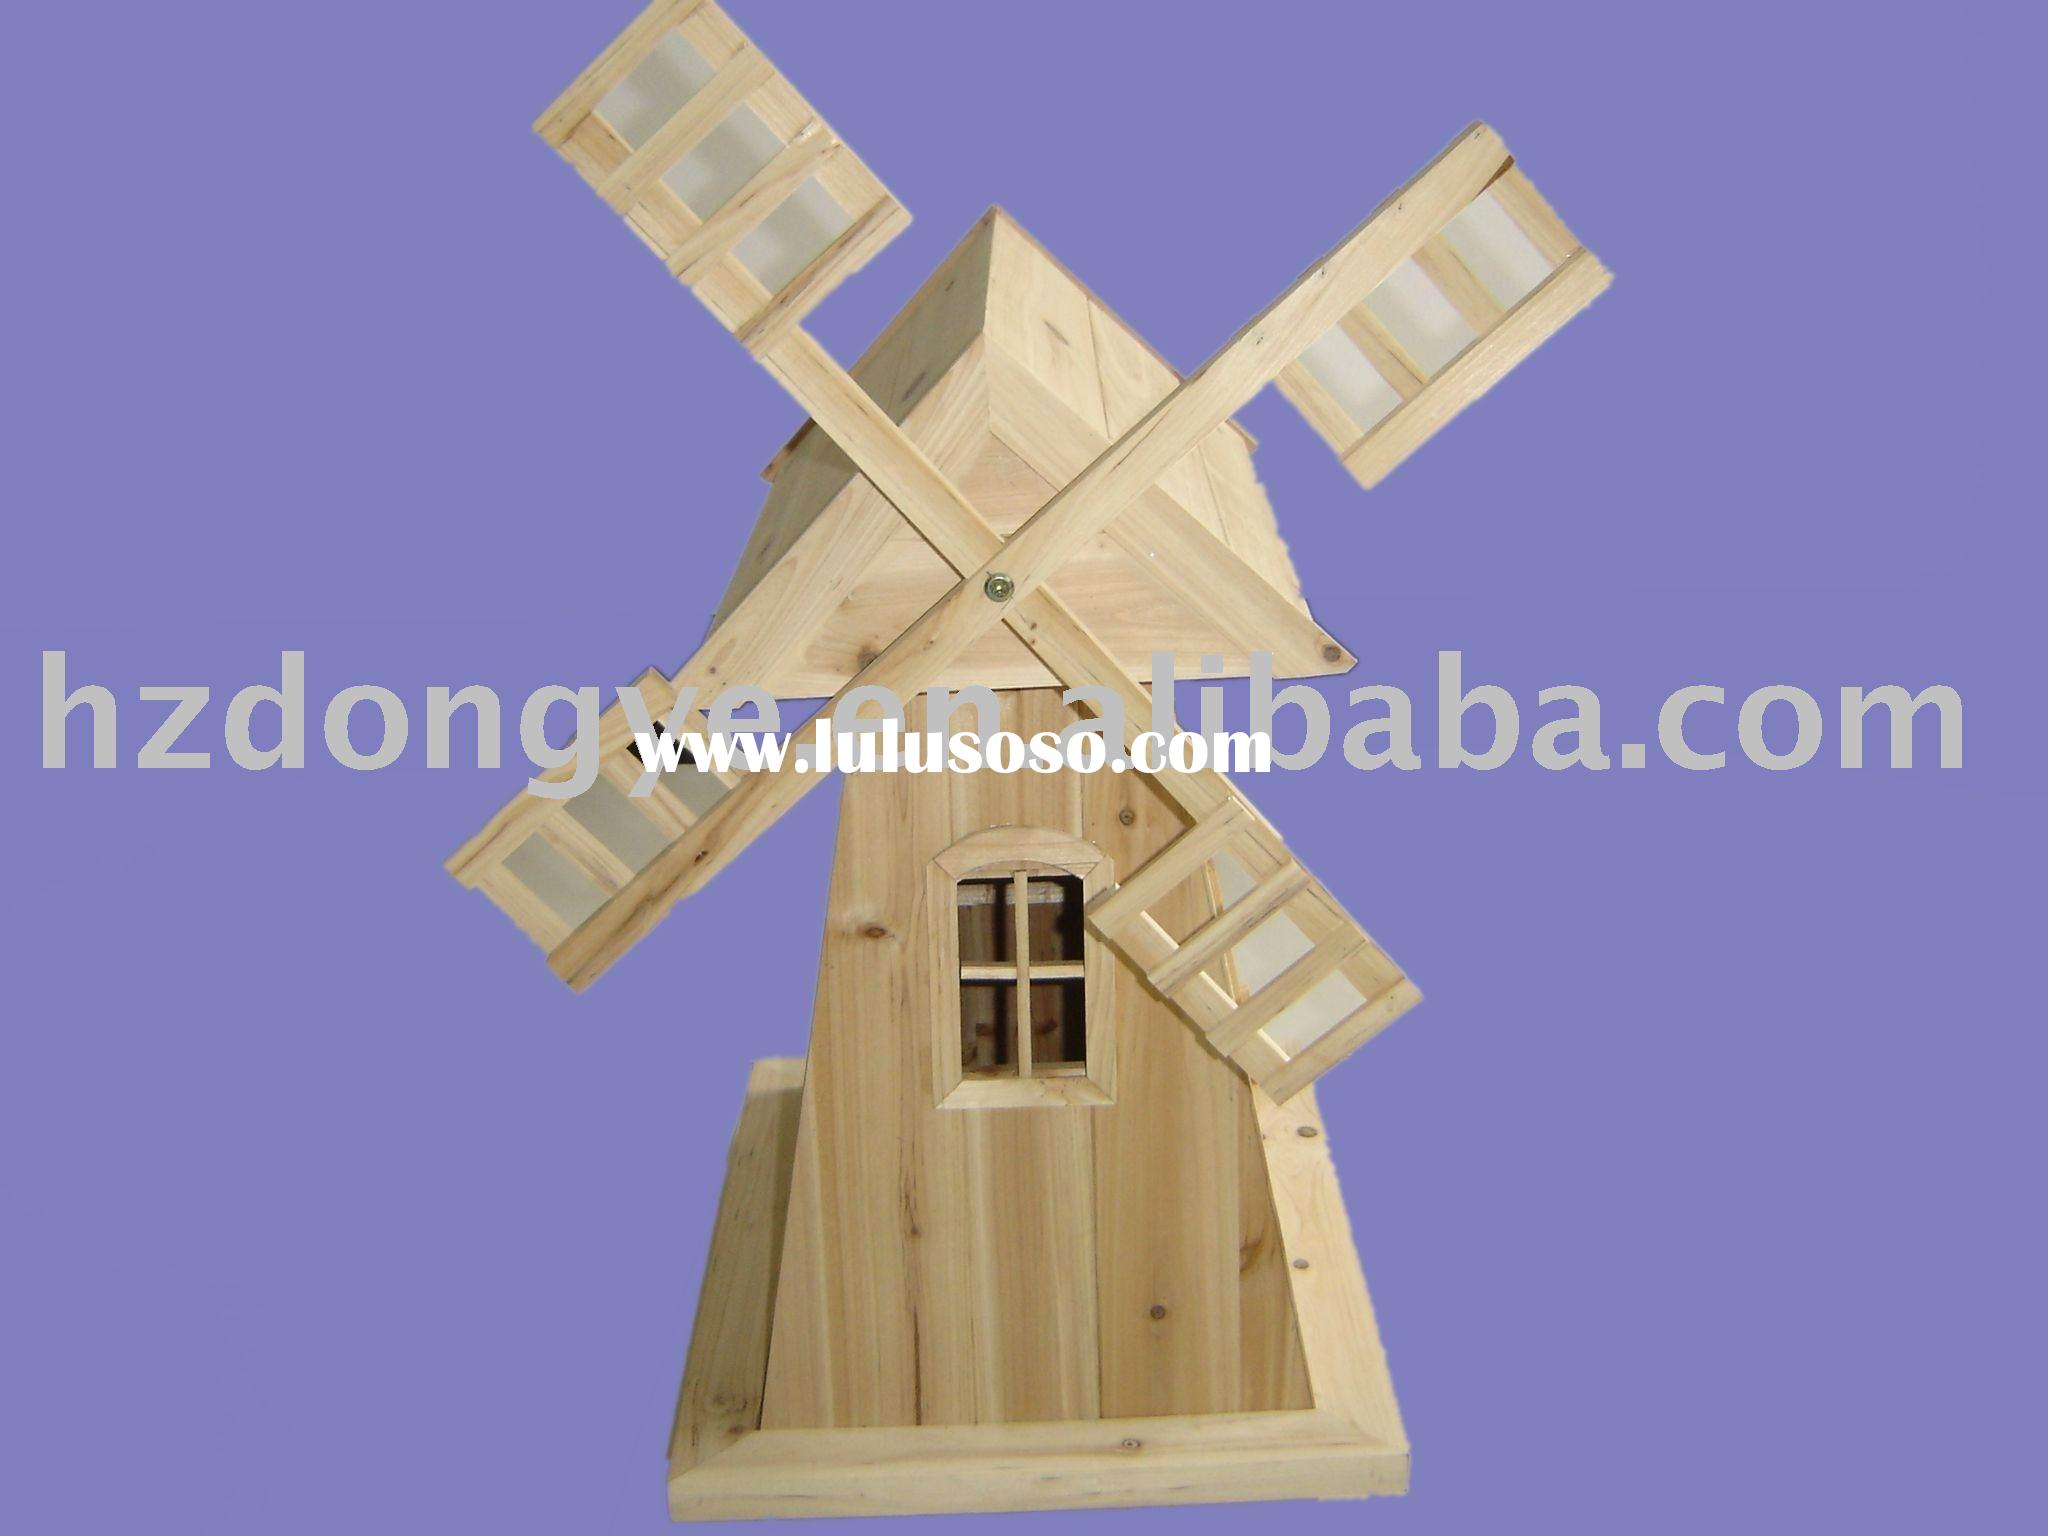 22 Wonderful Windmill Woodworking Plans Free – Garden Windmill Plans Pdf